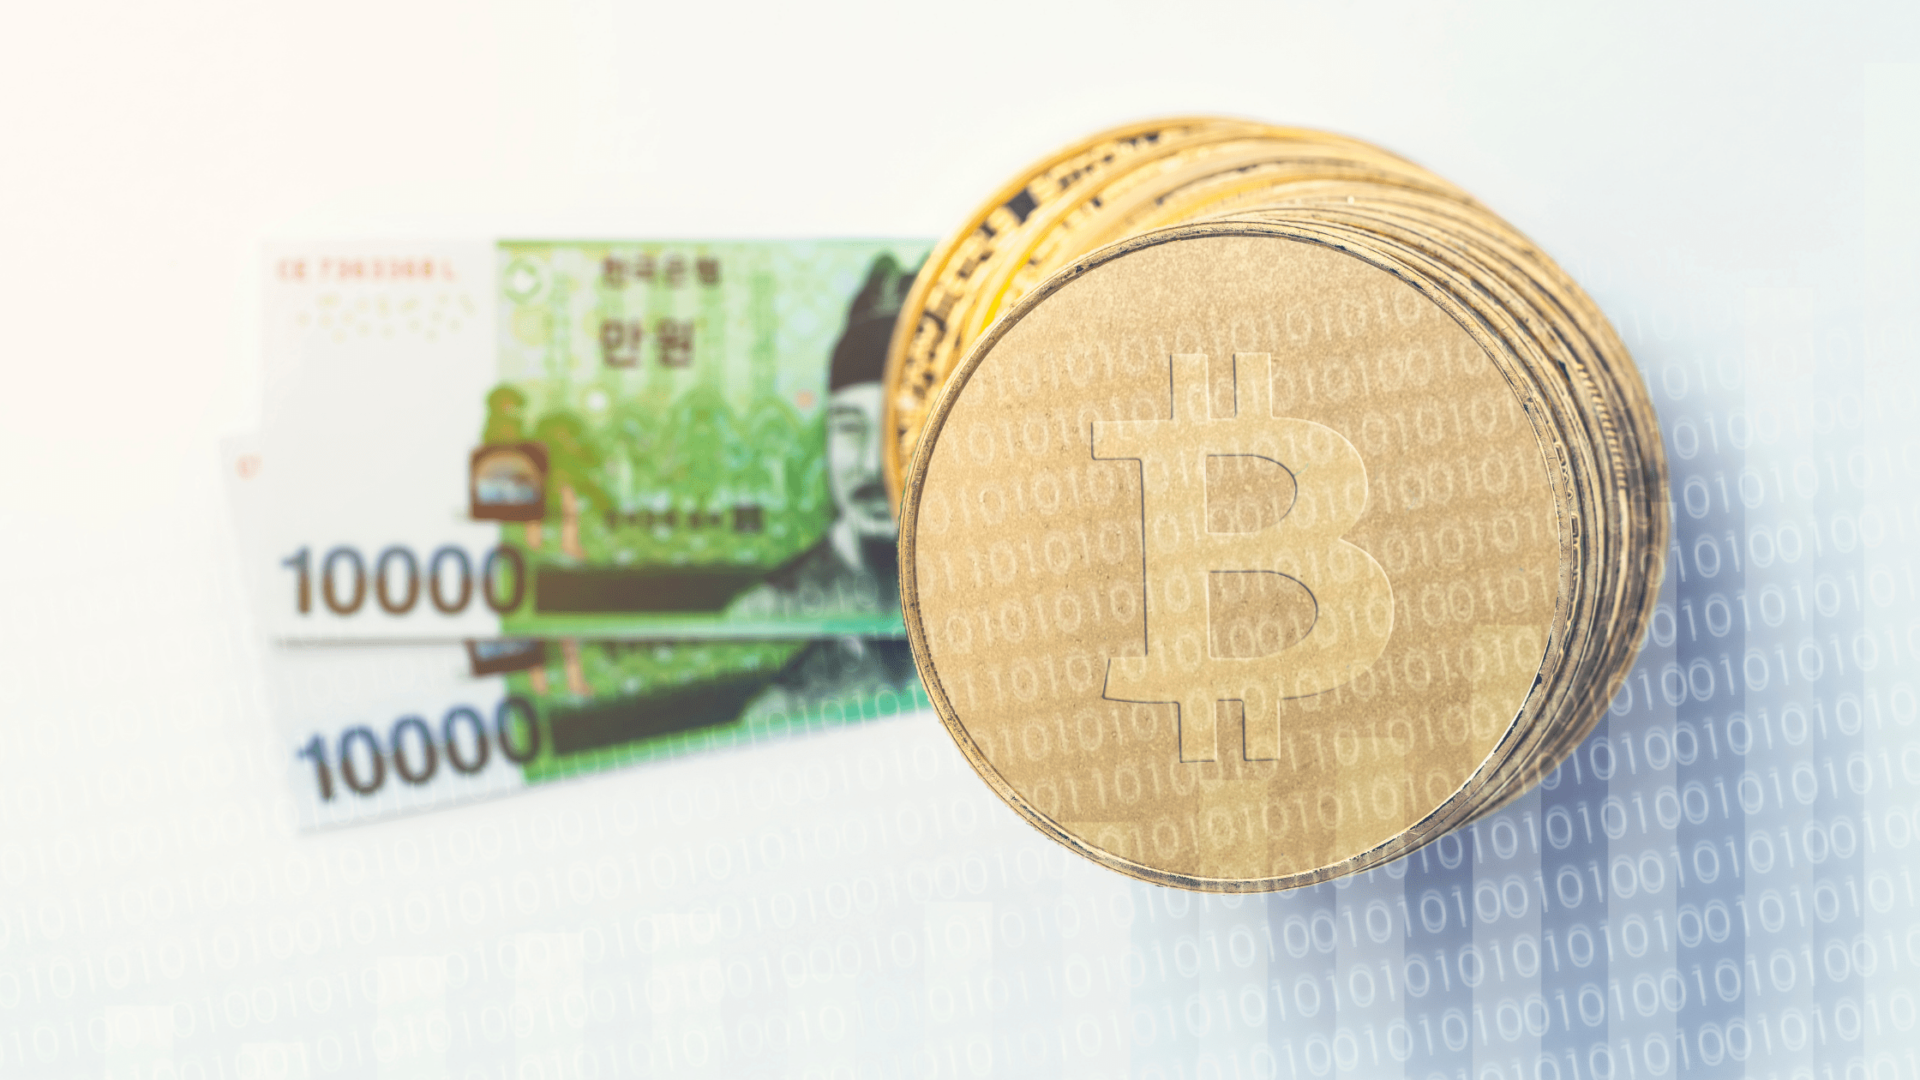 Rise of Bitcoin: Korean banks getting into 'Crypto' asset management <bold>business</bold>